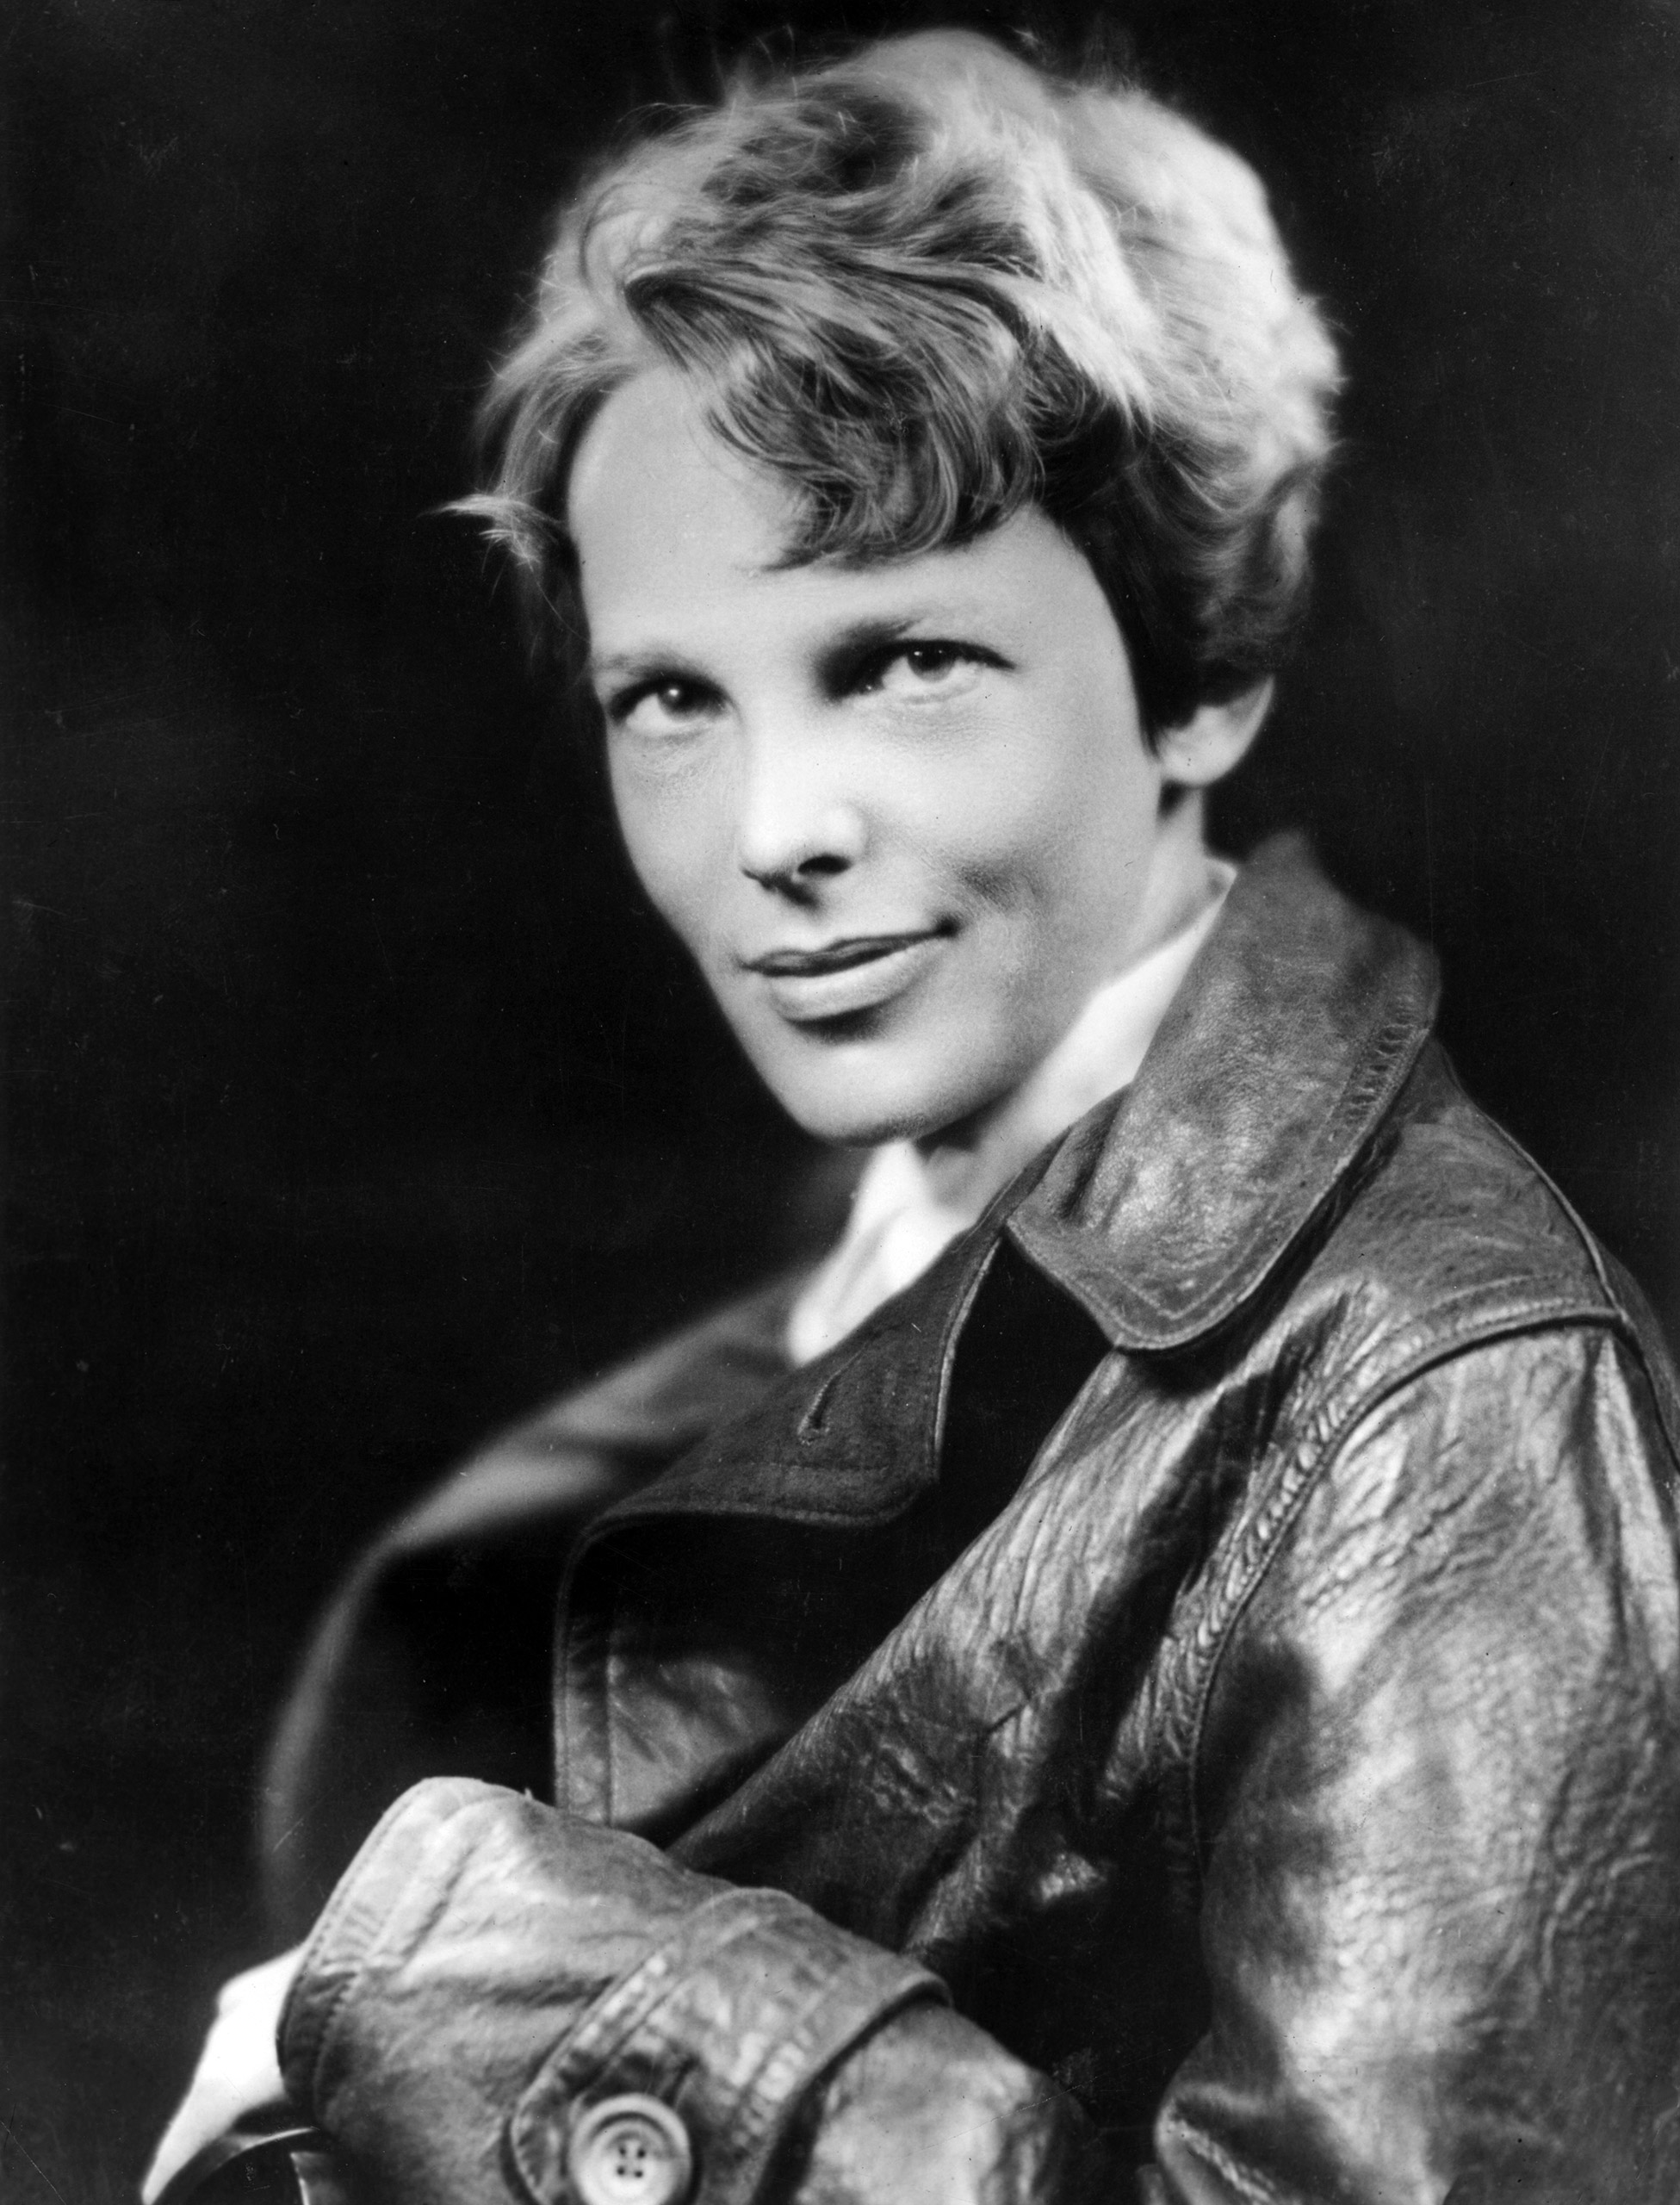 American aviator Amelia Earhart, the first woman to complete a solo transatlantic flight, wearing a leather jacket. Circa 1932.